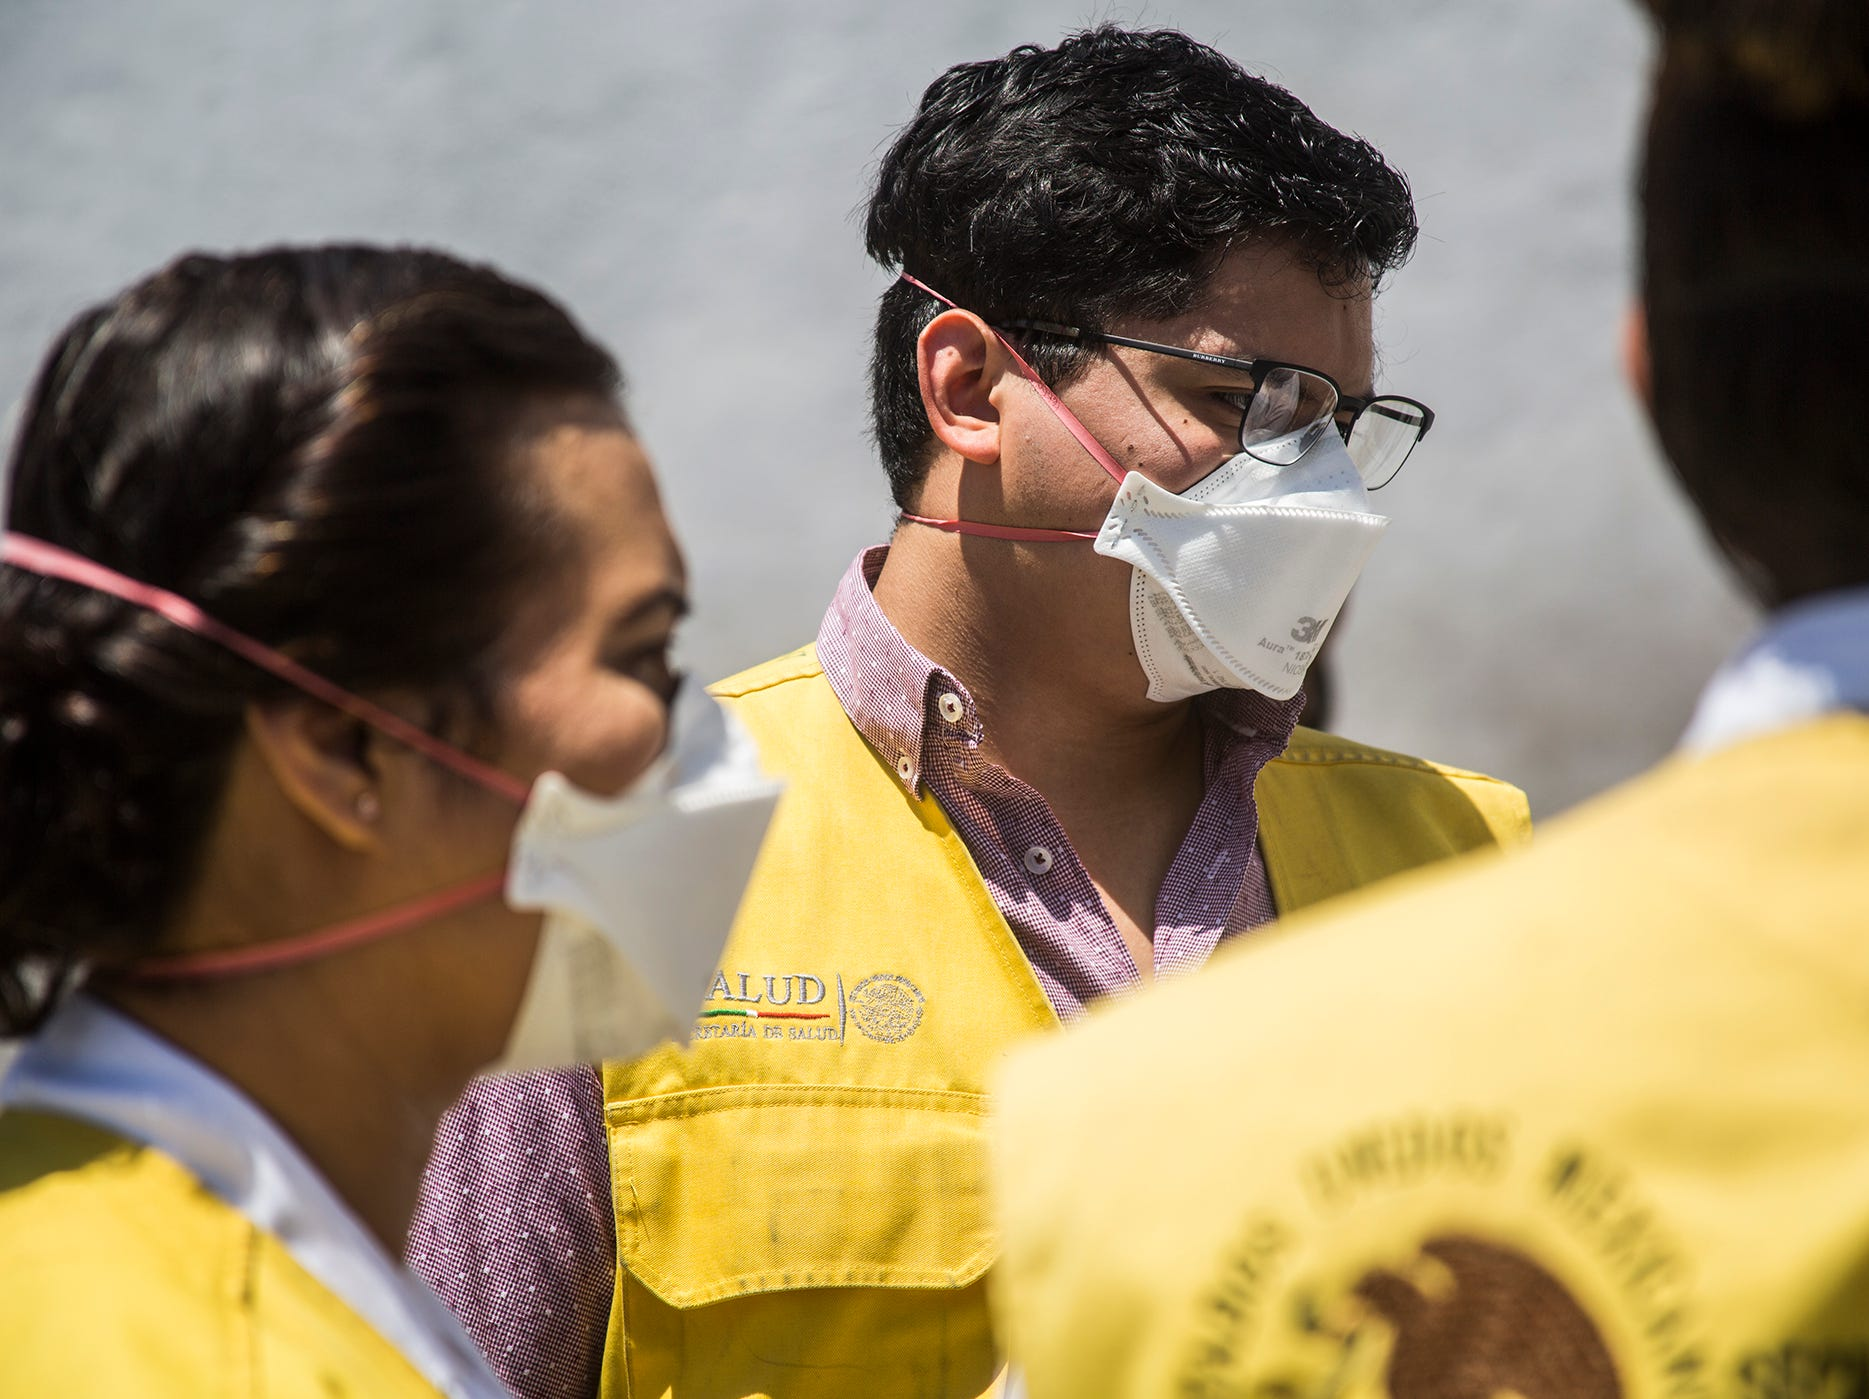 Health workers from the state government of Baja California visit the Casa de Ayuda Alfa y Omega surveying infected migrants on May 14, 2019.